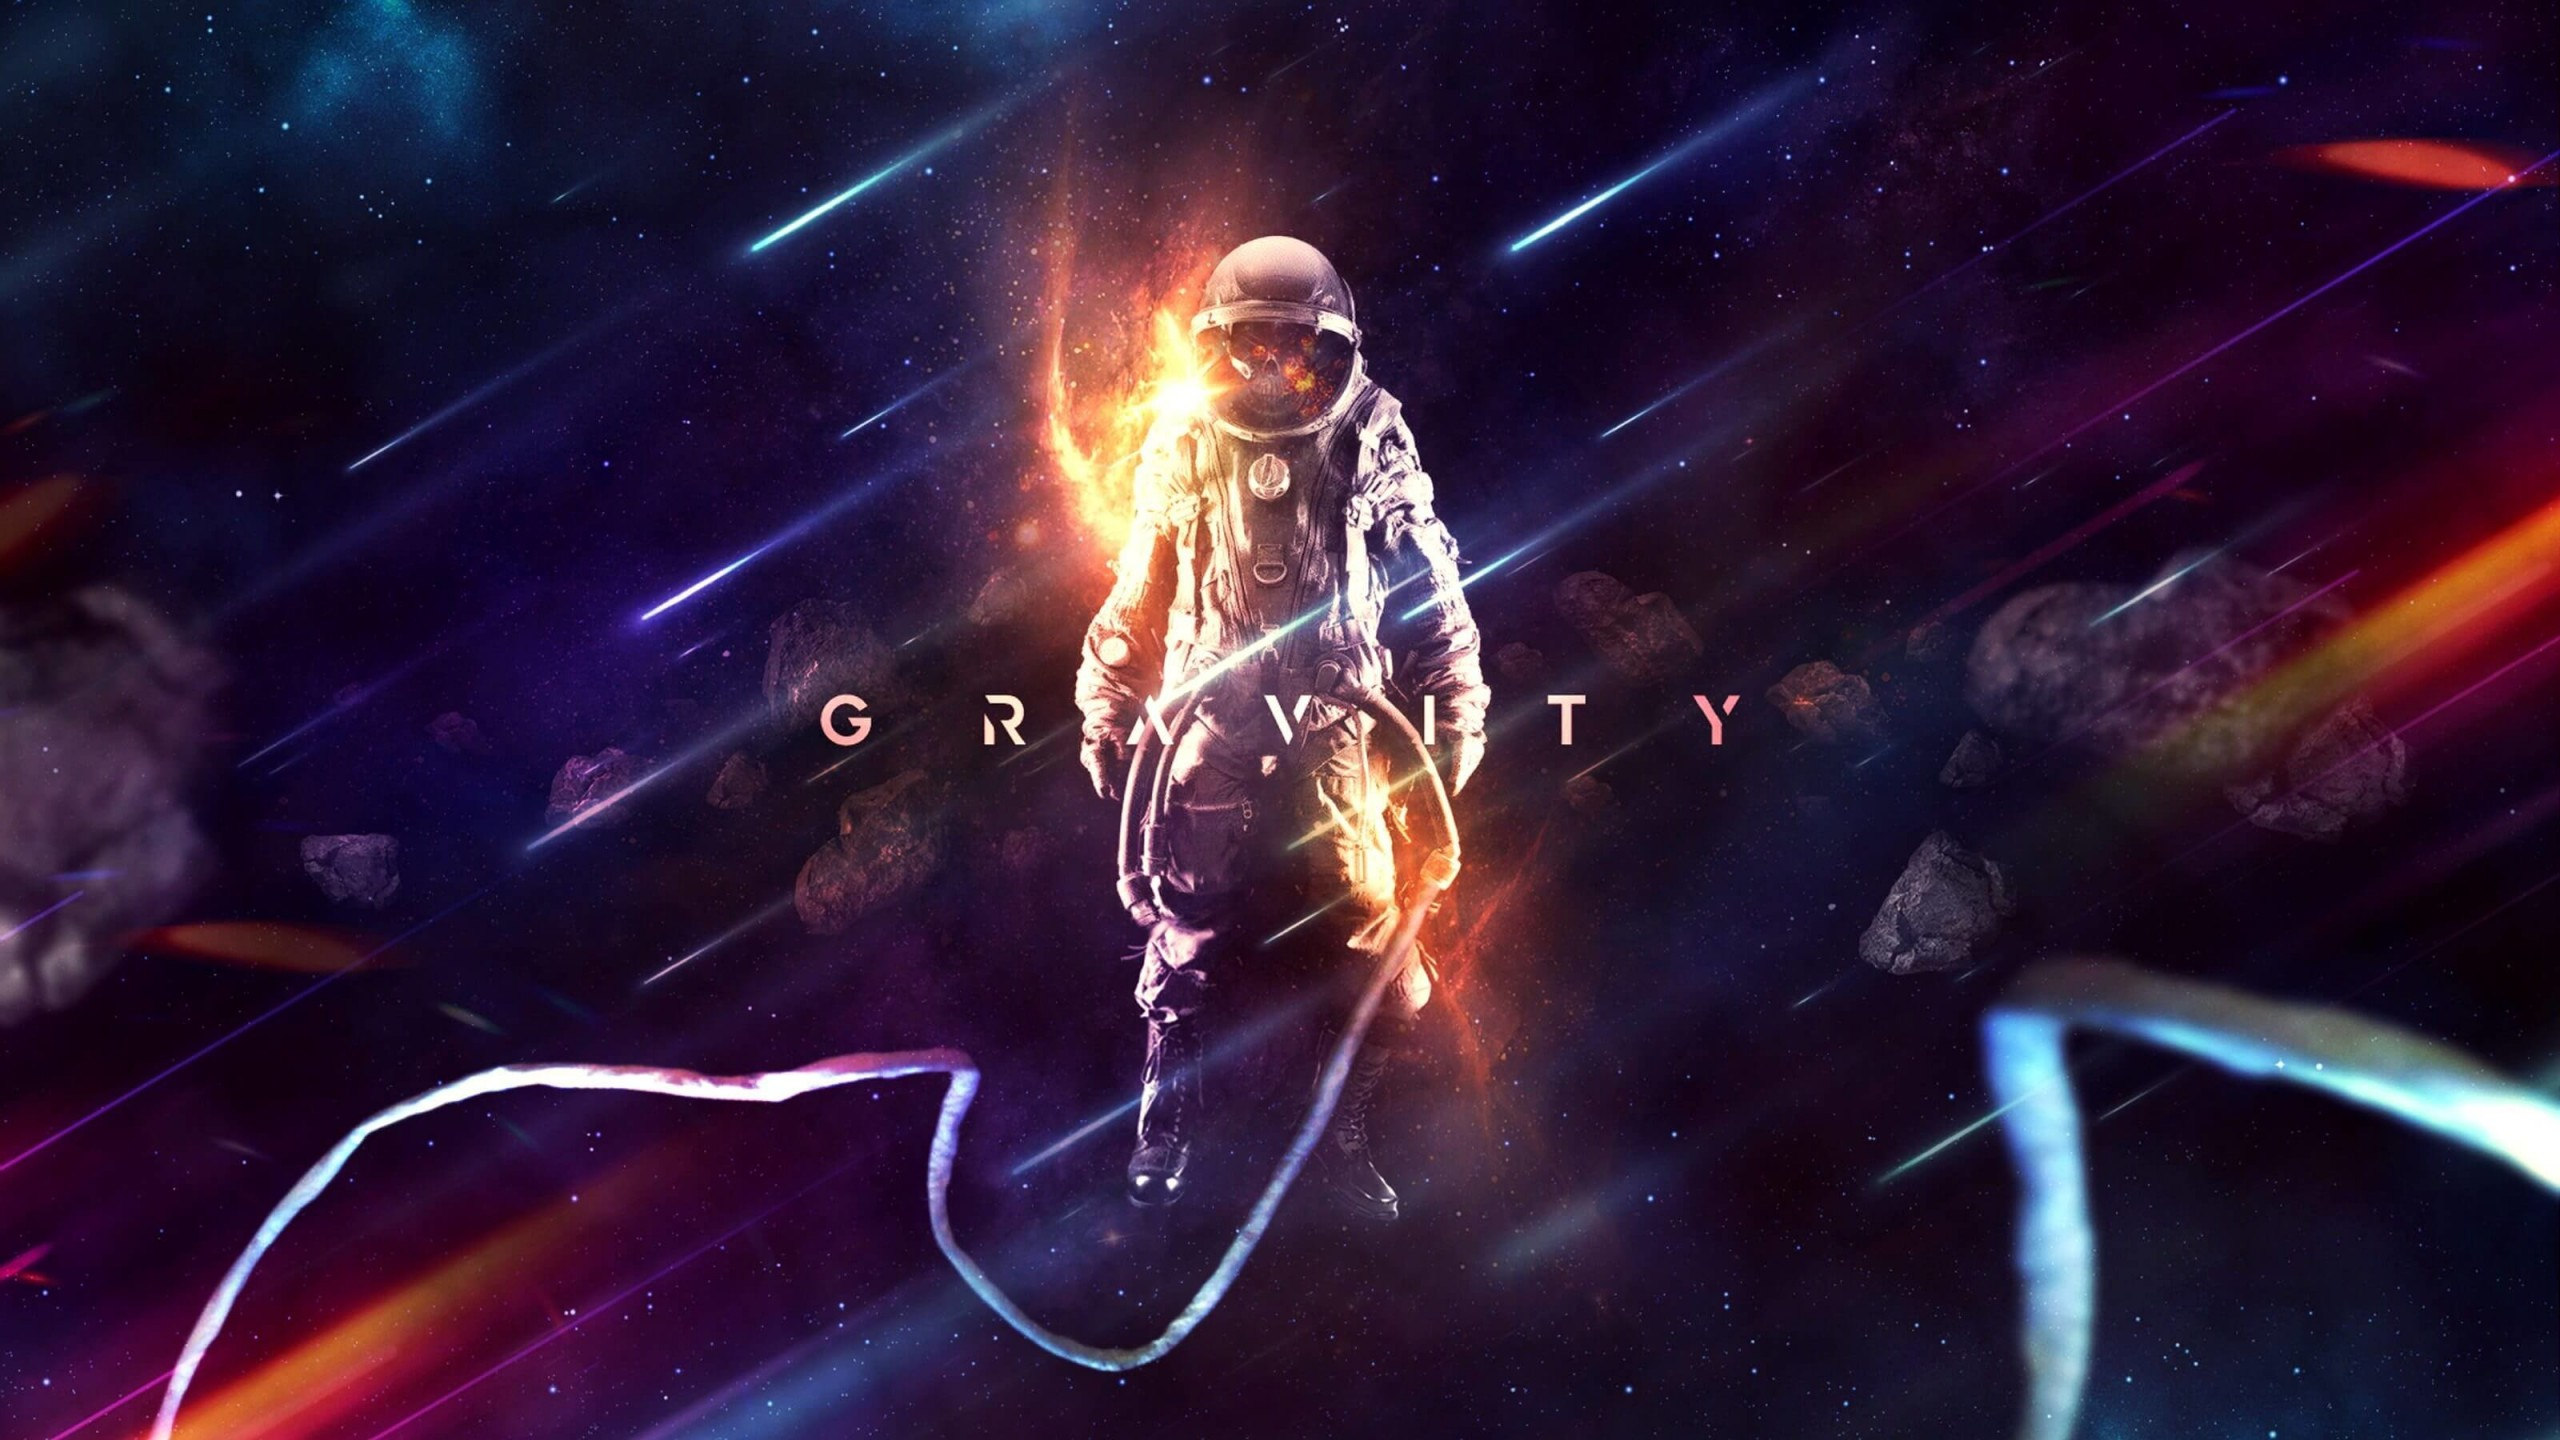 G R A V I T Y Wallpaper for Desktop 2560x1440